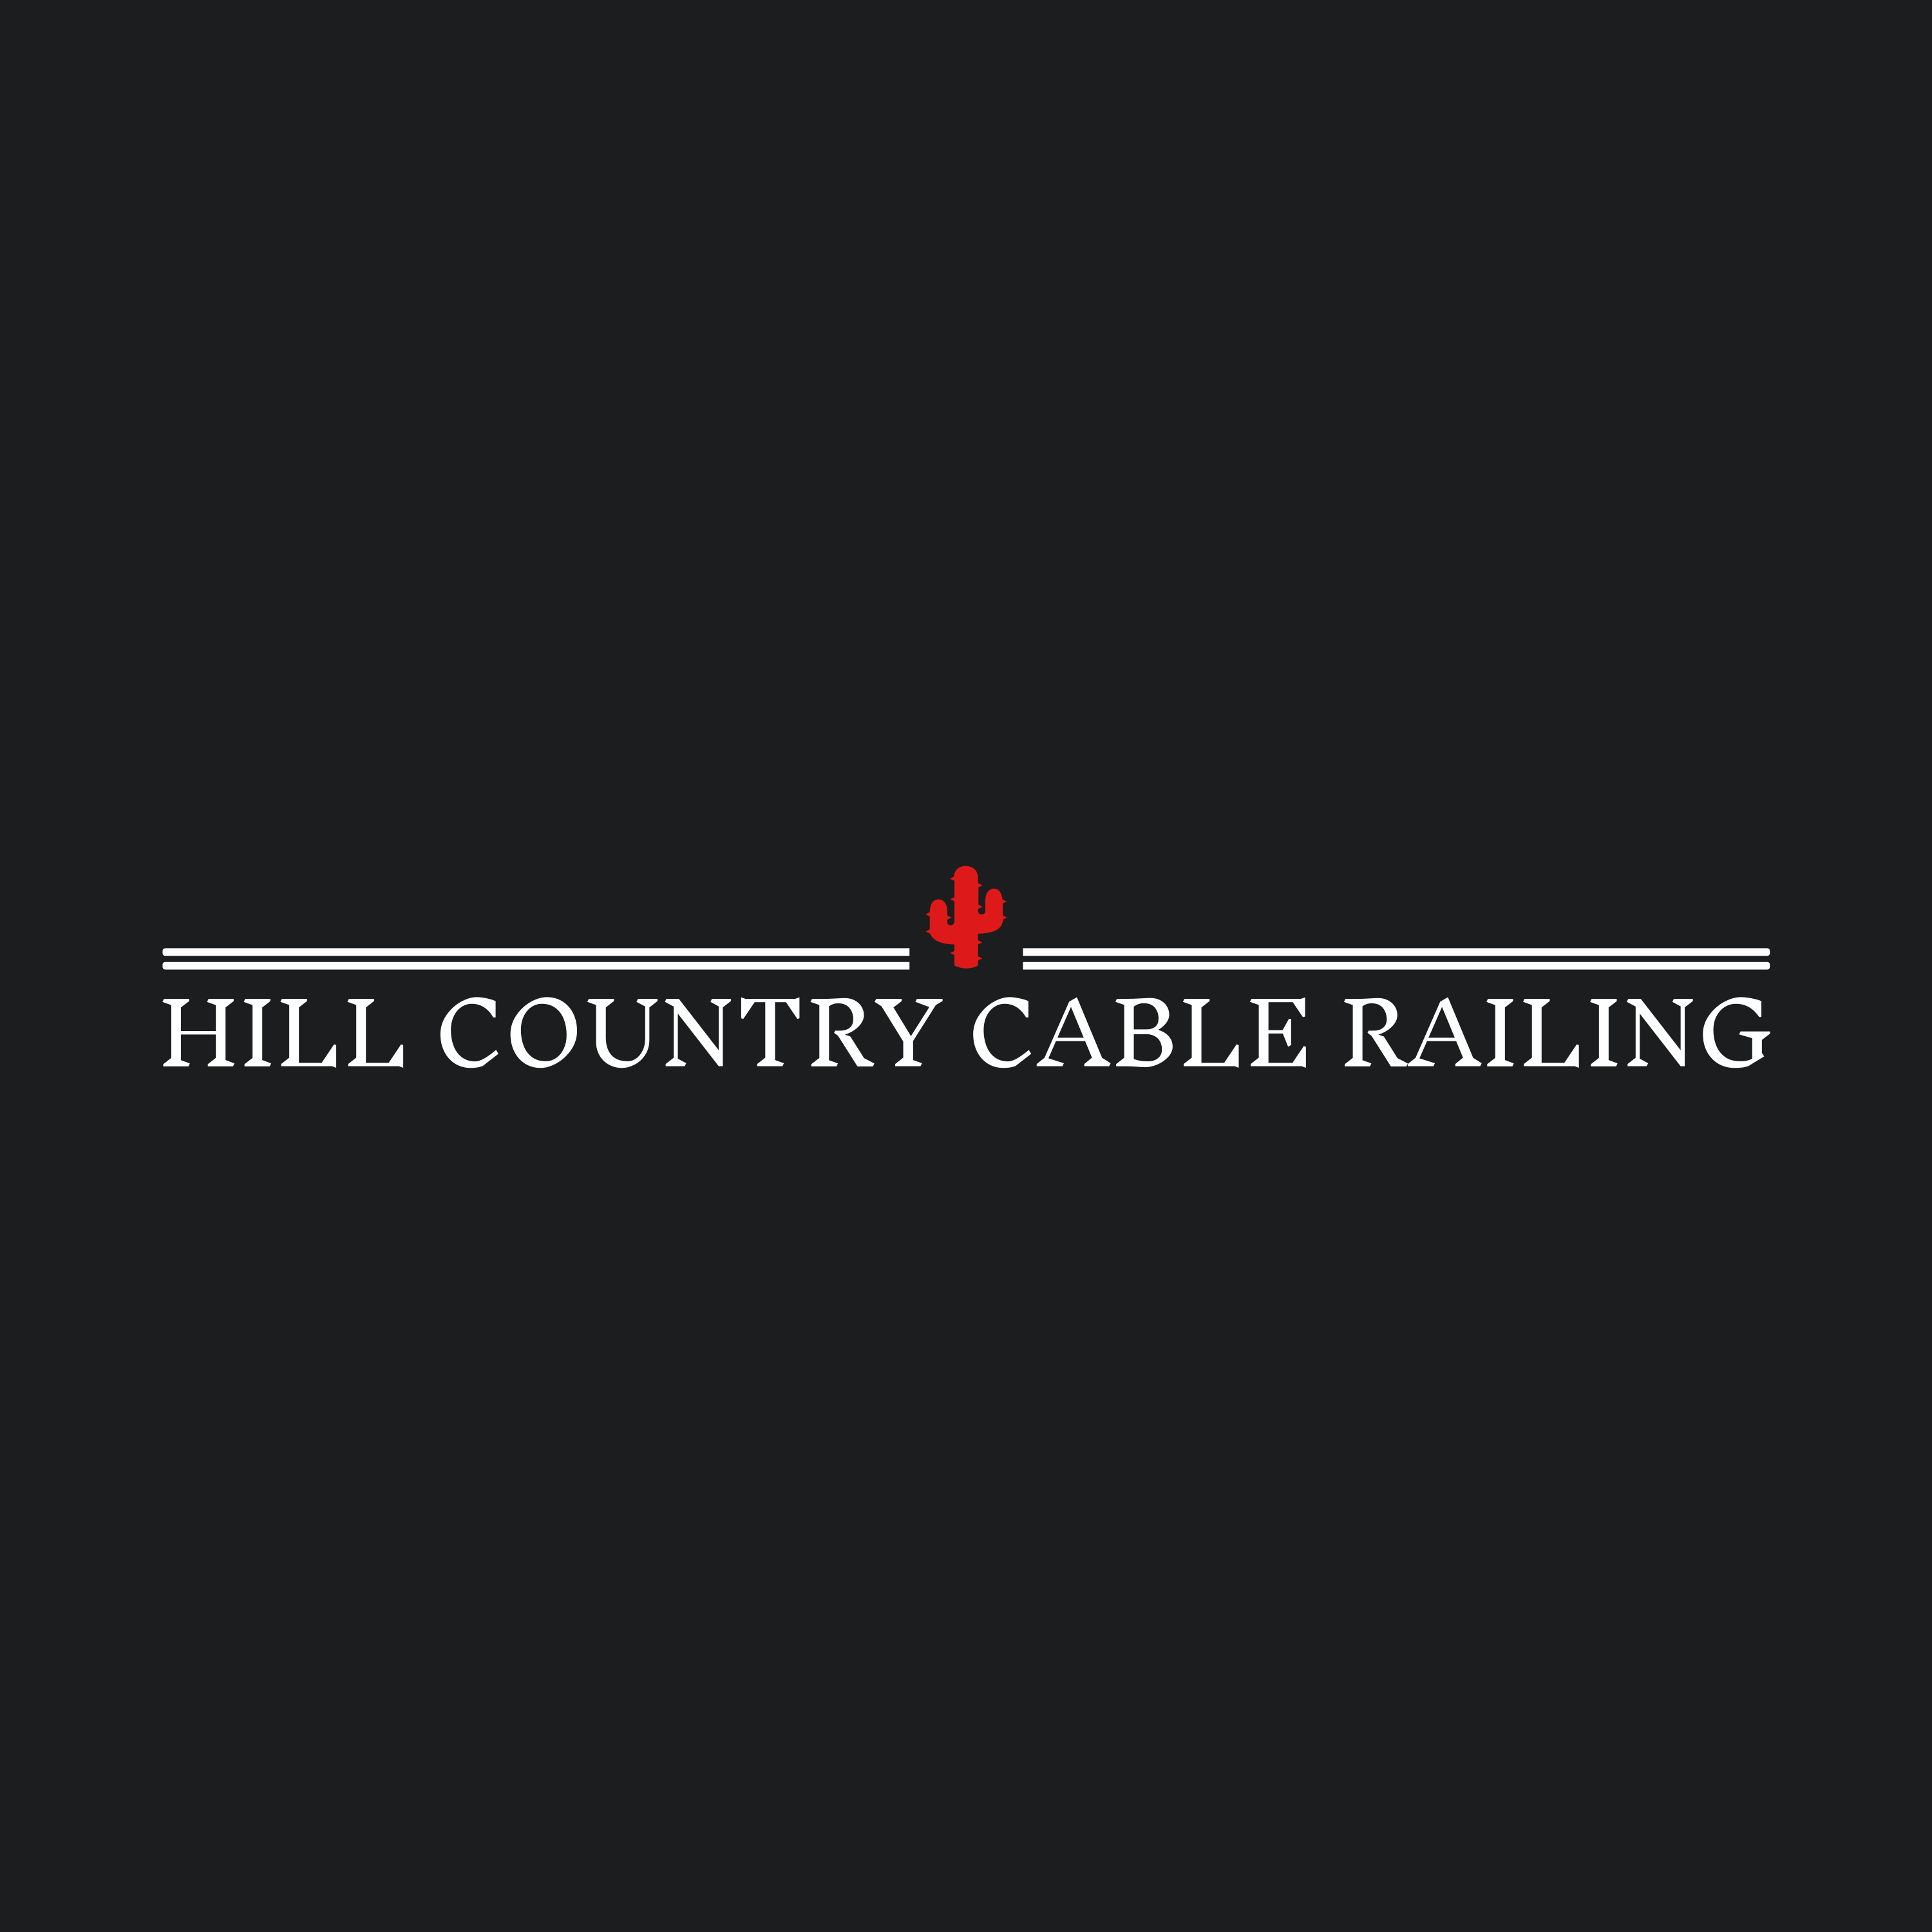 HILL COUNTRY CABLE RAILING